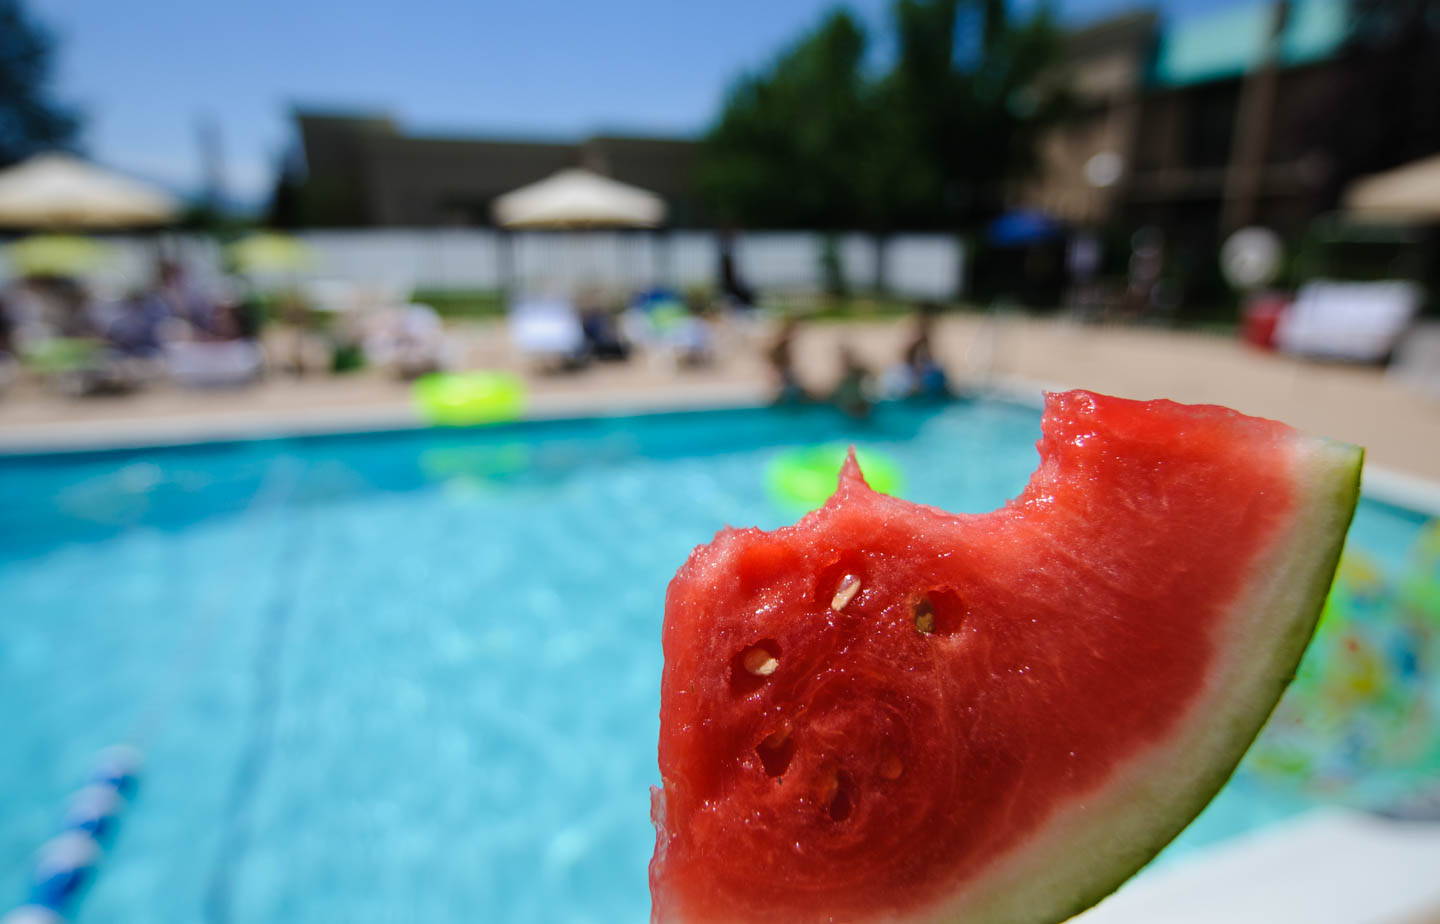 Watermelon and the pool party